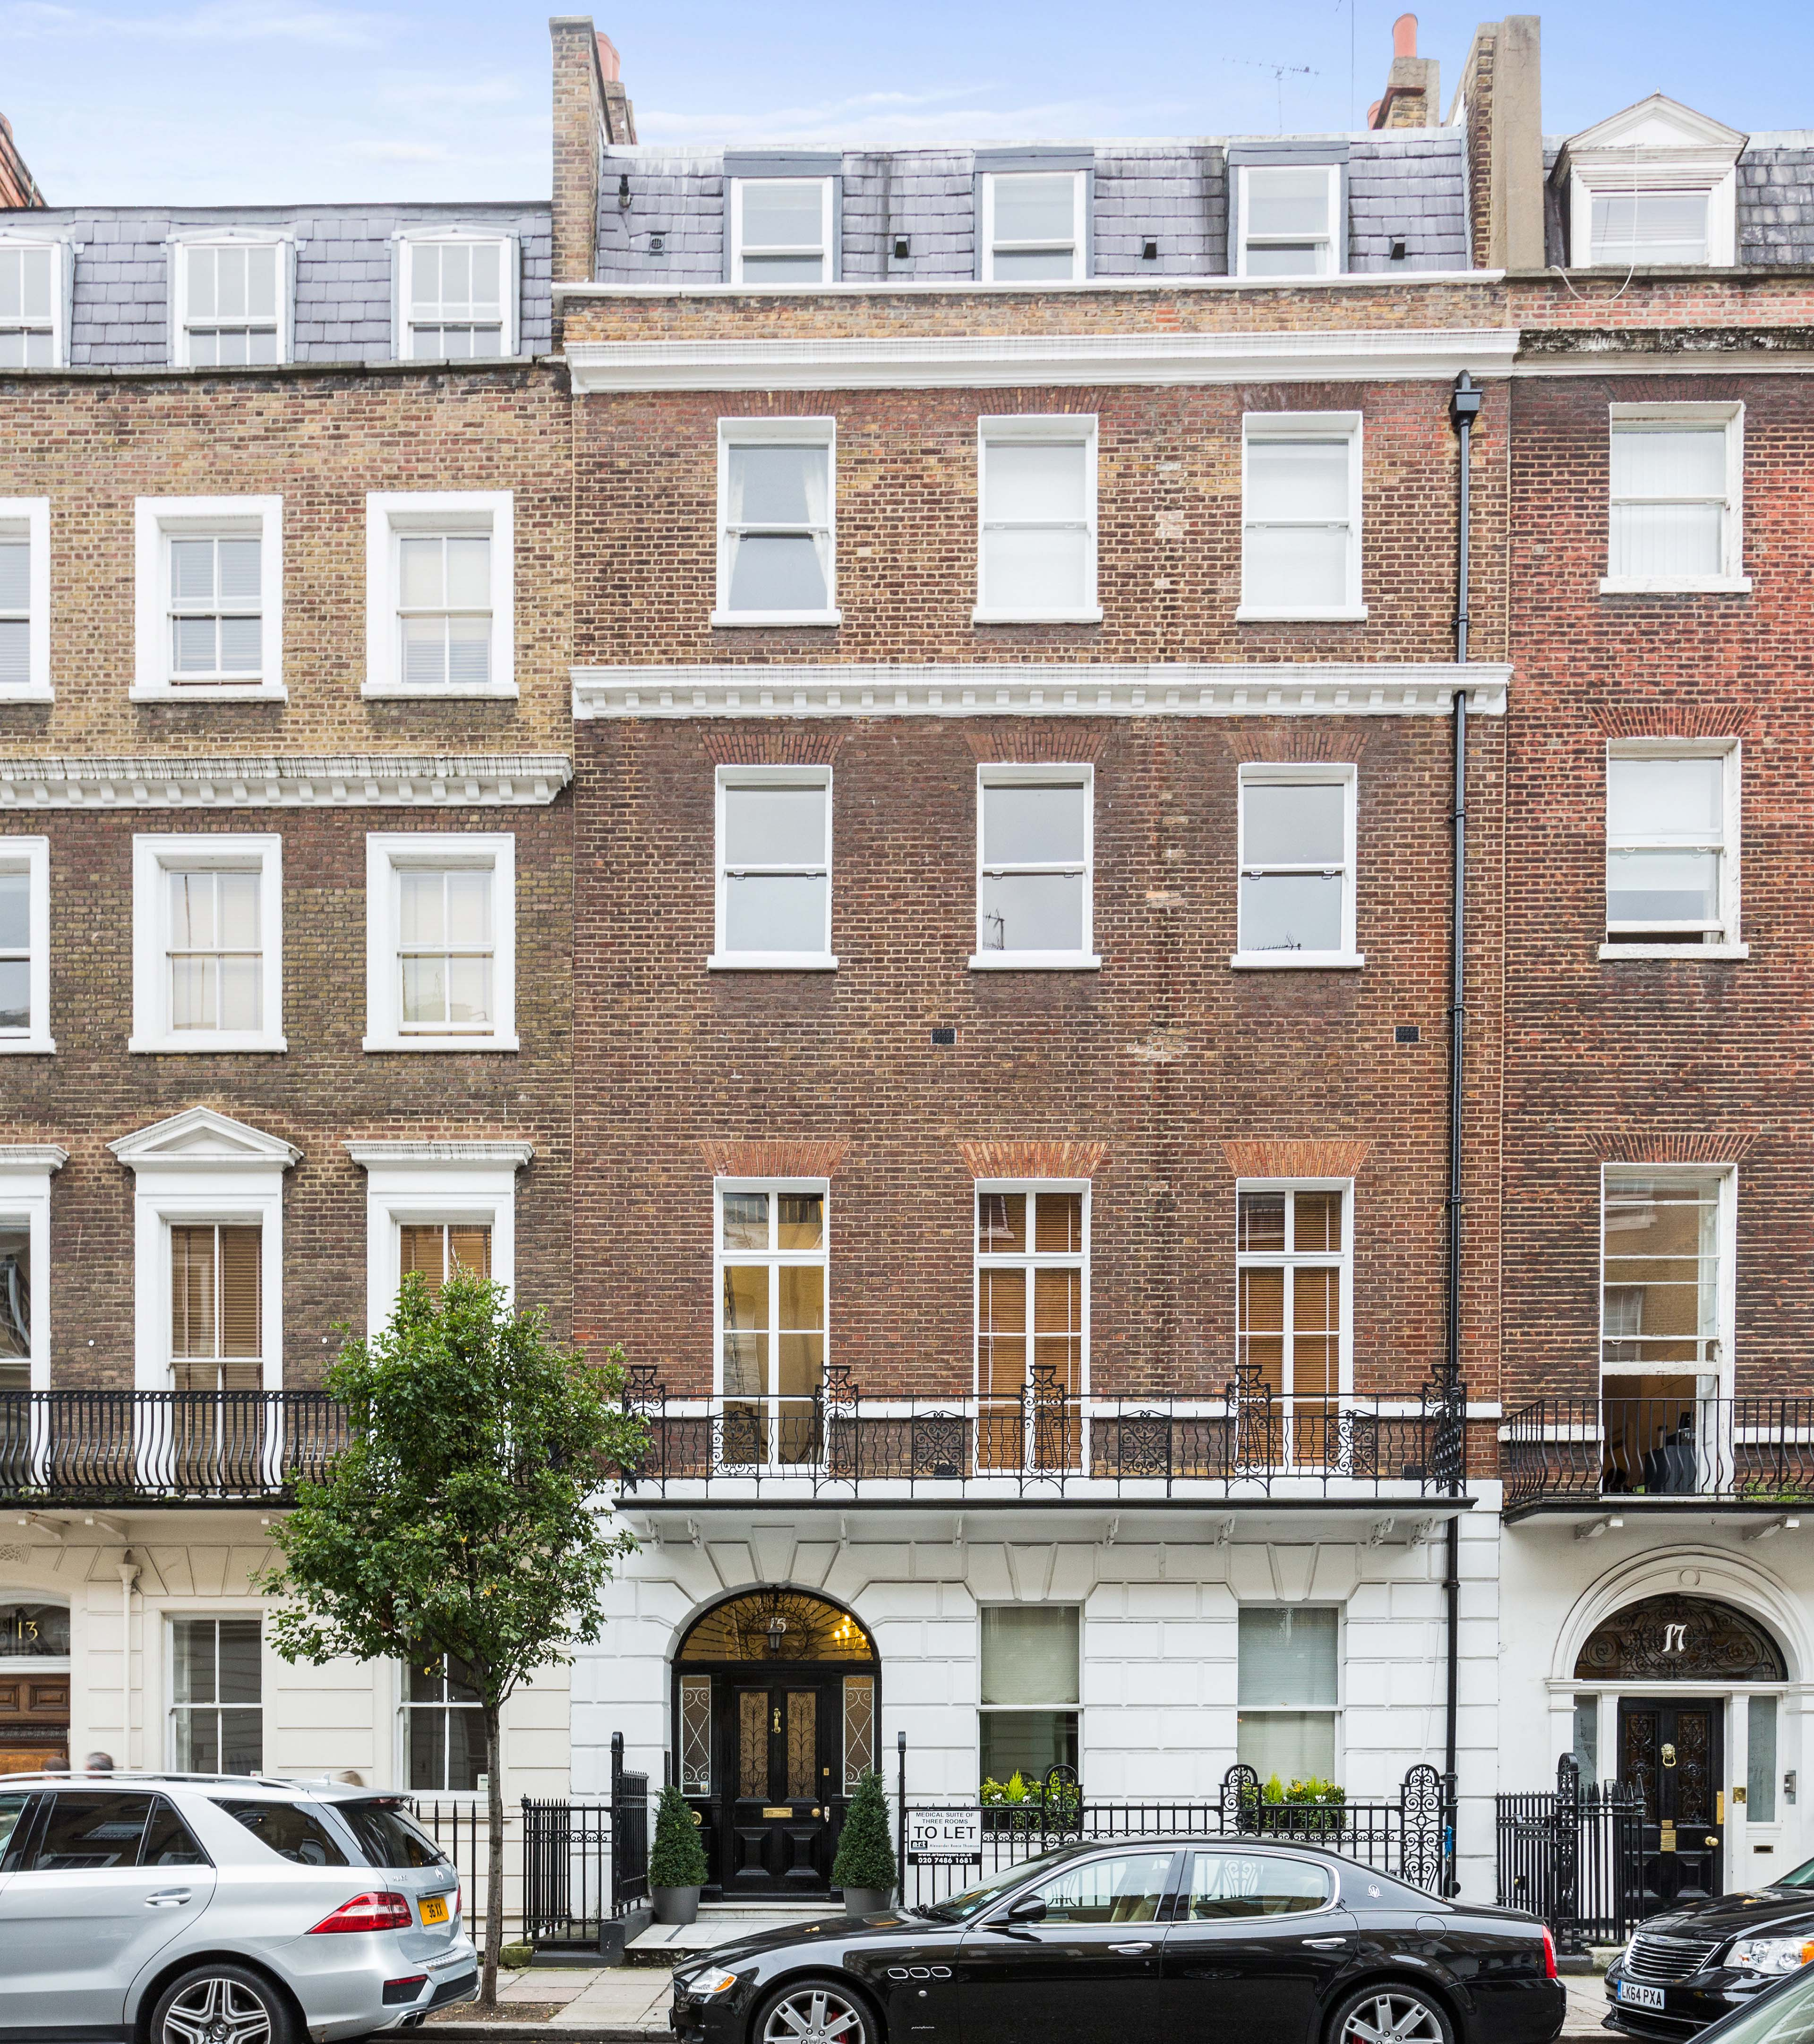 Commercial Property In Marylebone